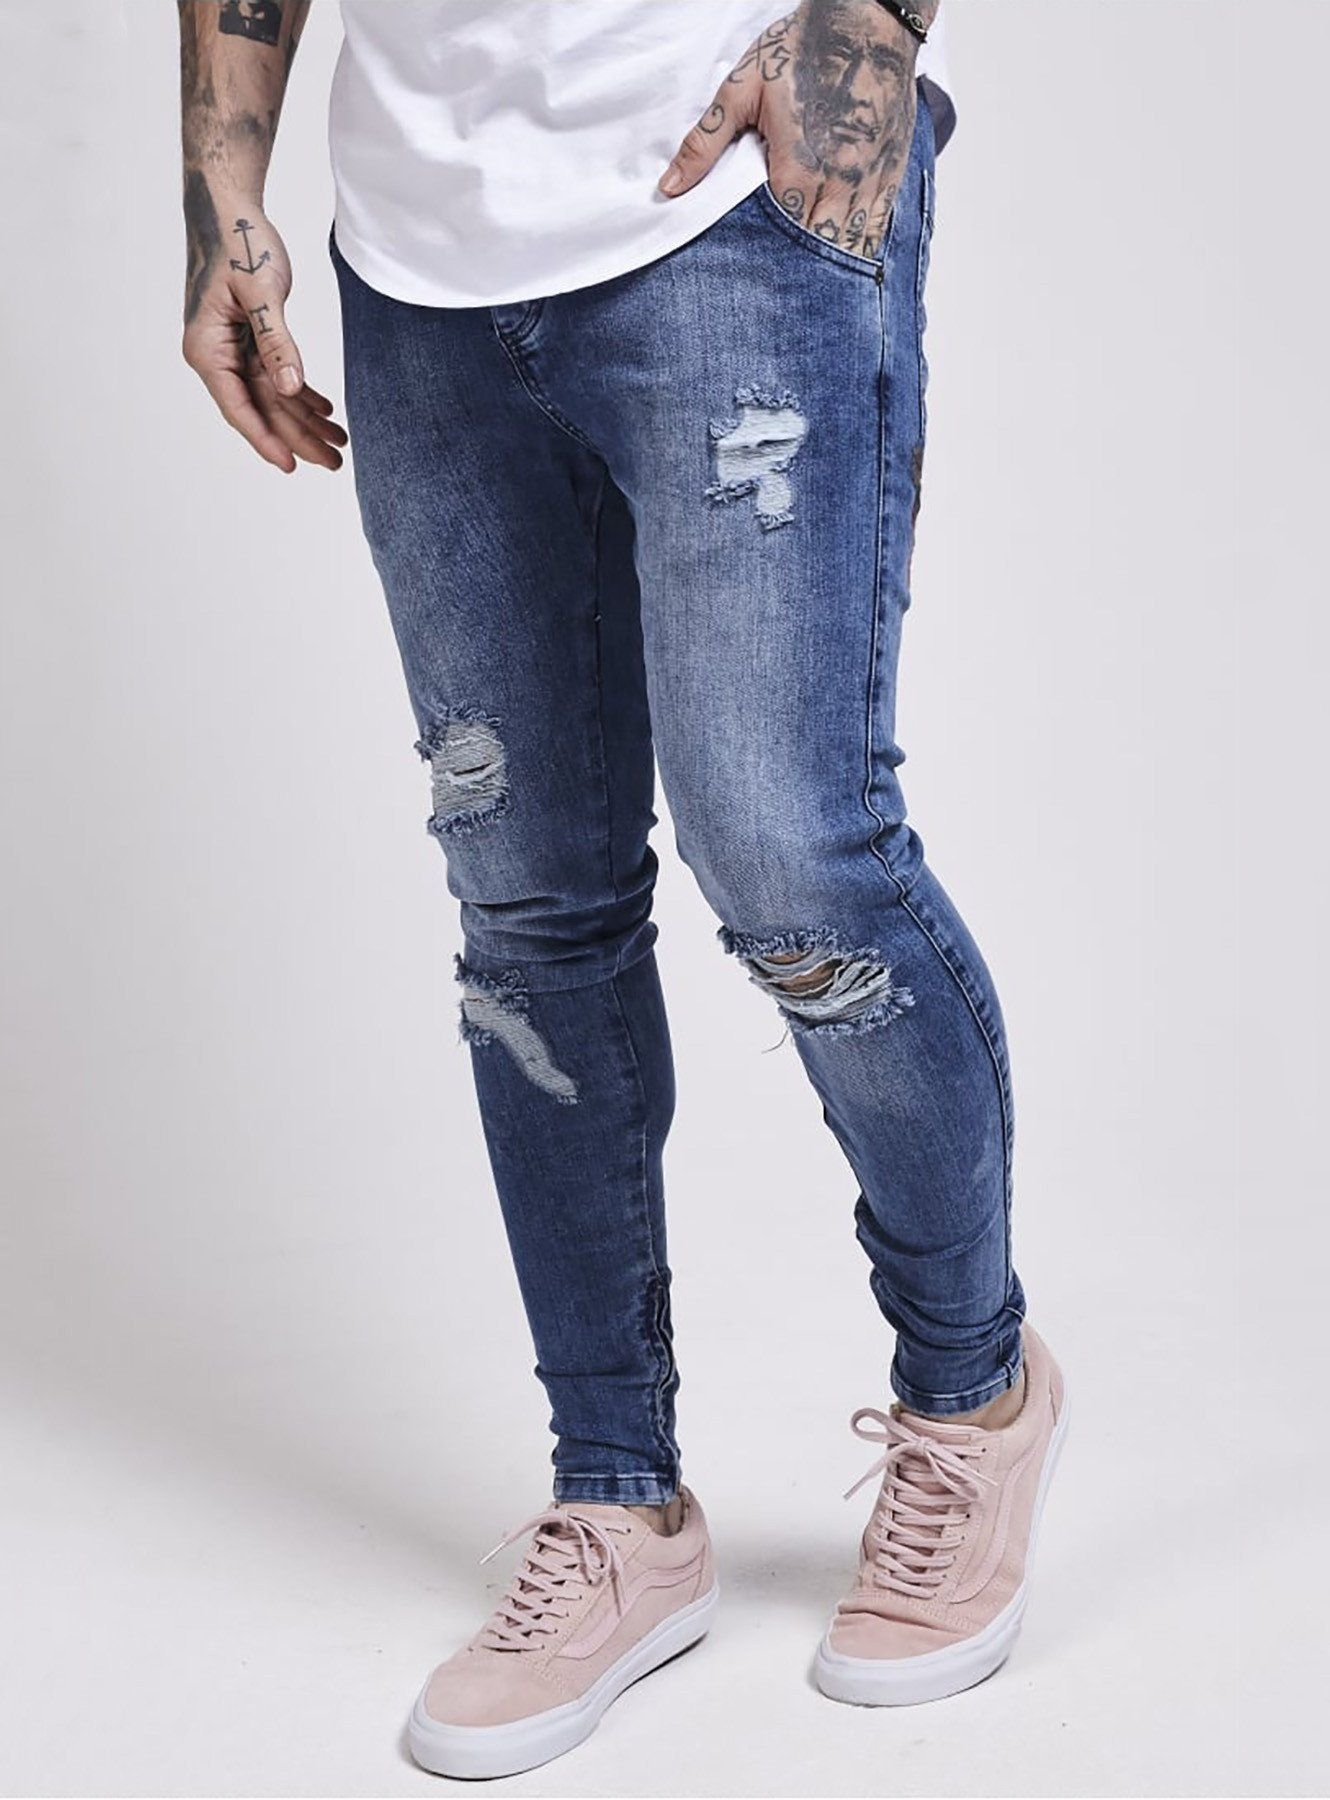 9983020a06 Stretch denim - Drop crotch - Concealed button fly - Distressed detailing -  Ankle zip